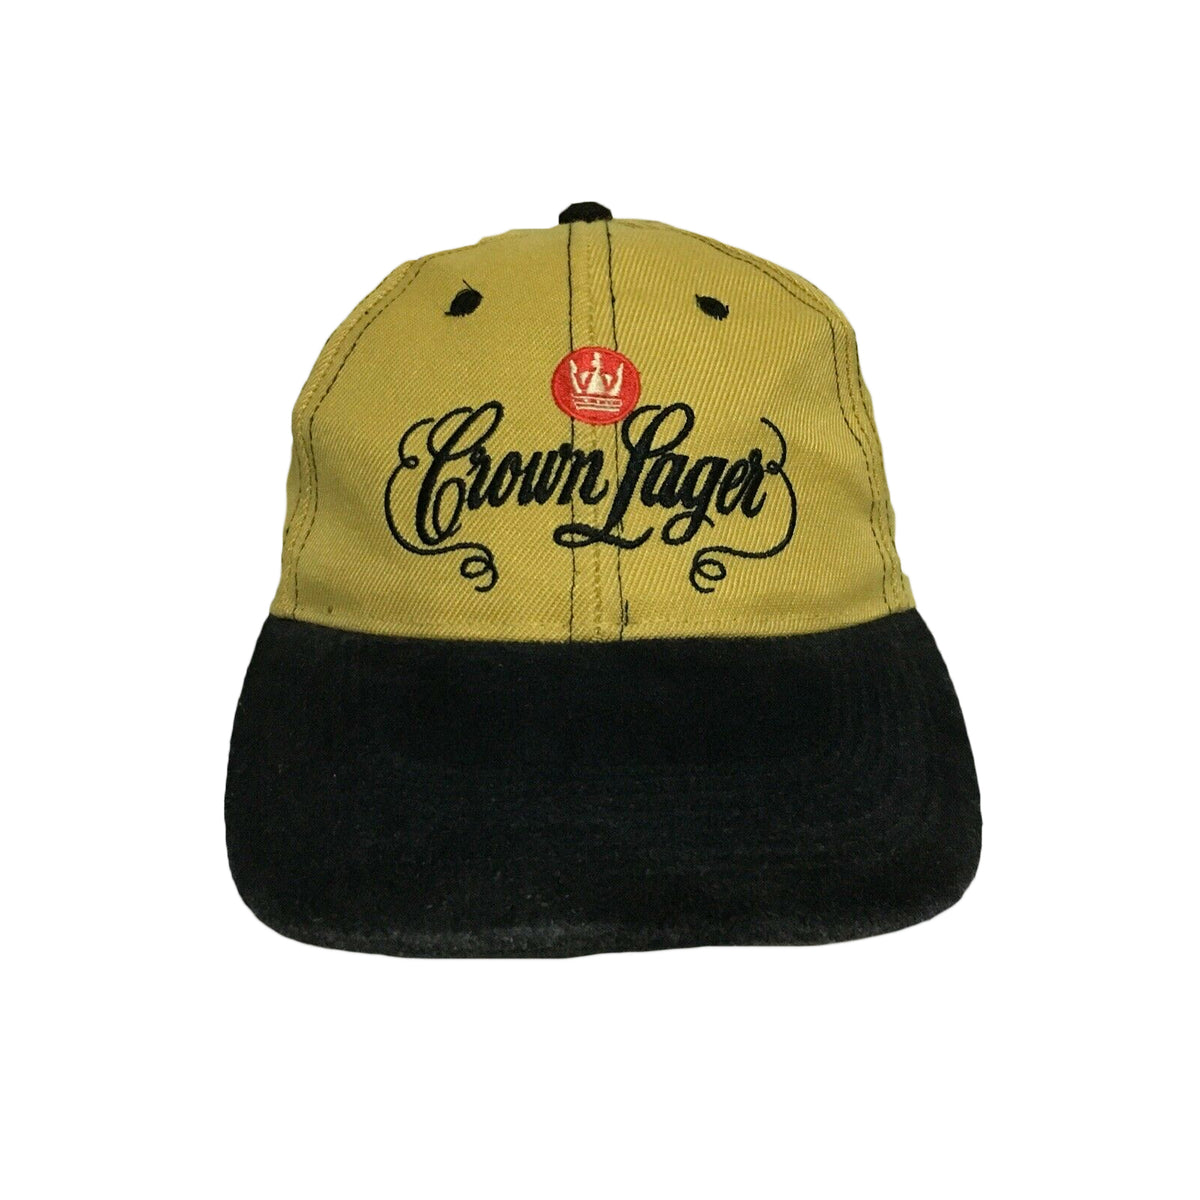 Crown Lager Beer Vintage Baseball Cap